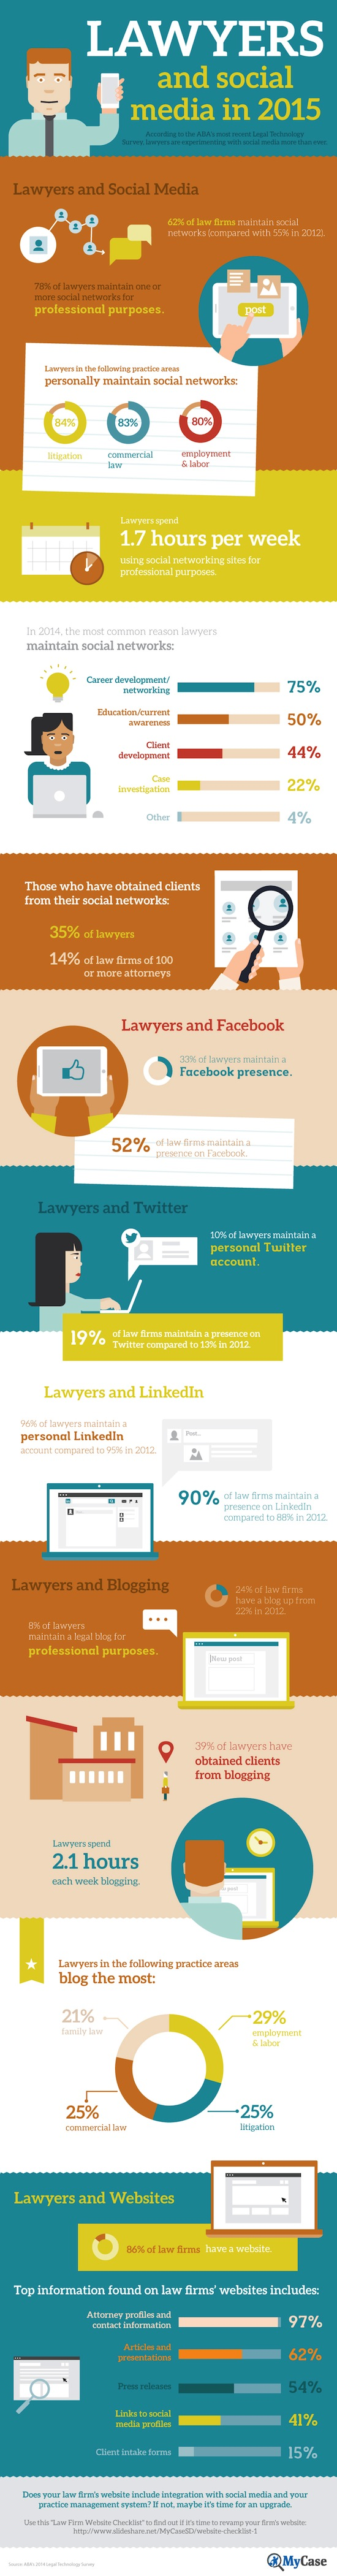 Infographic: How lawyers are using social media ?